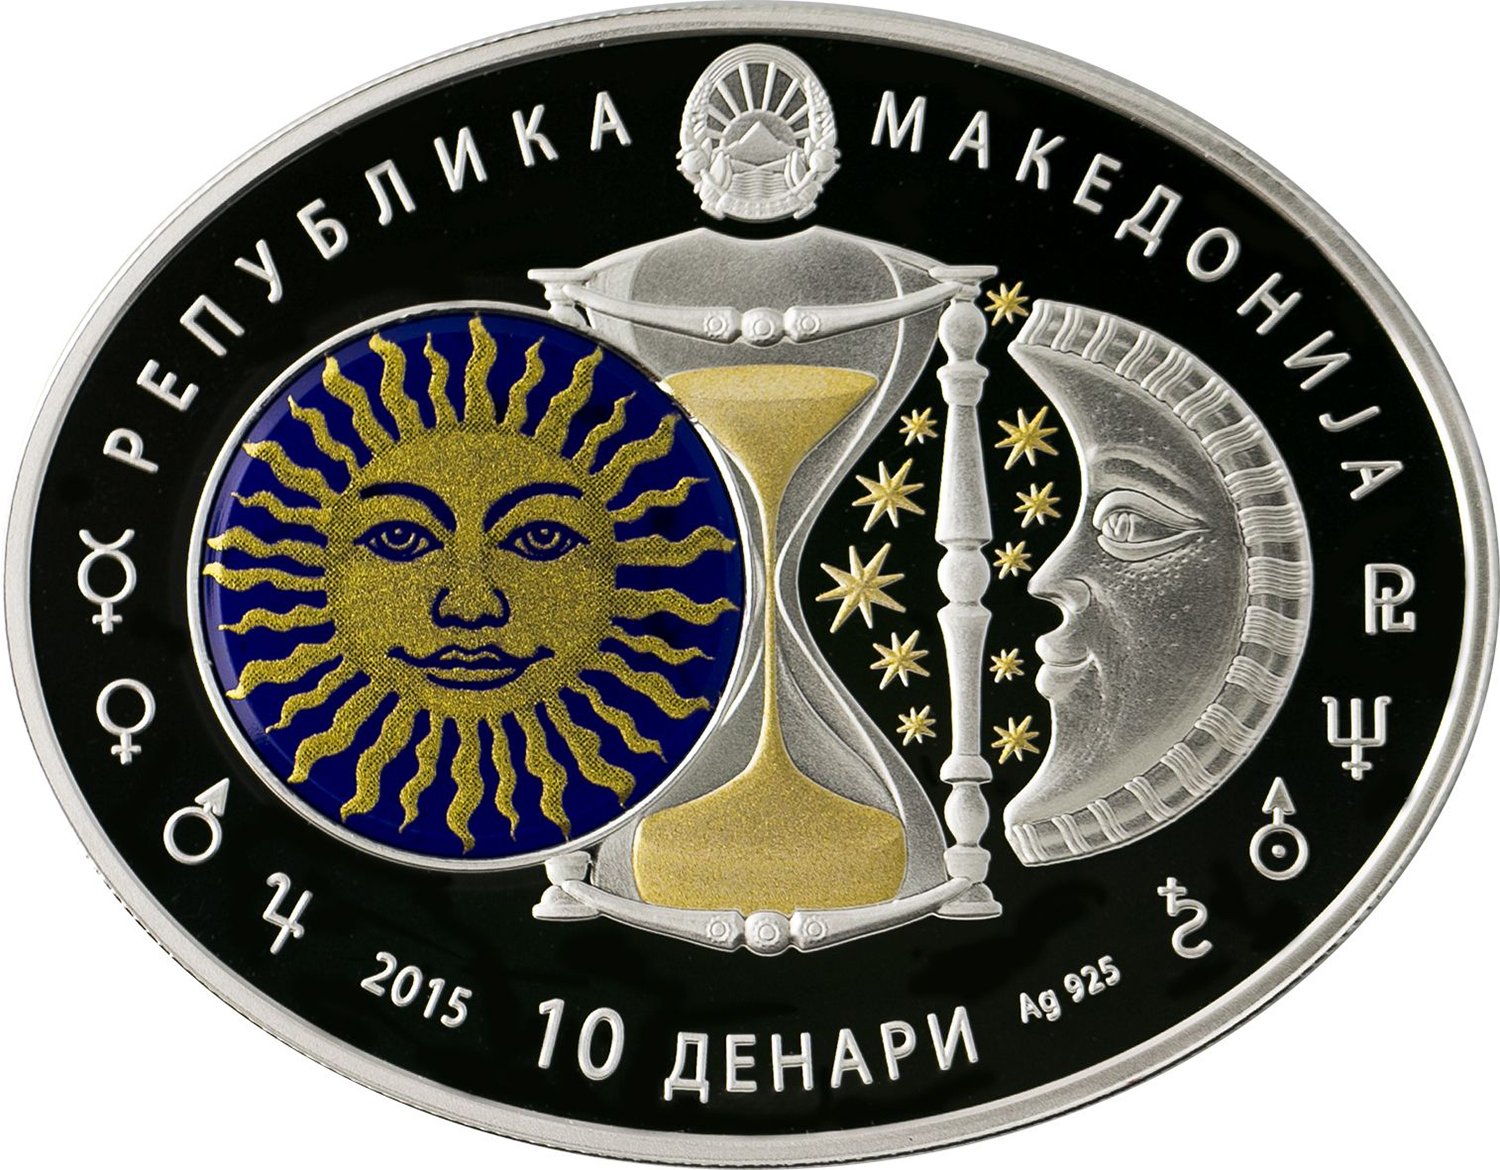 2015 Macedonia Silver Proof Zodiac Sign (Pisces)